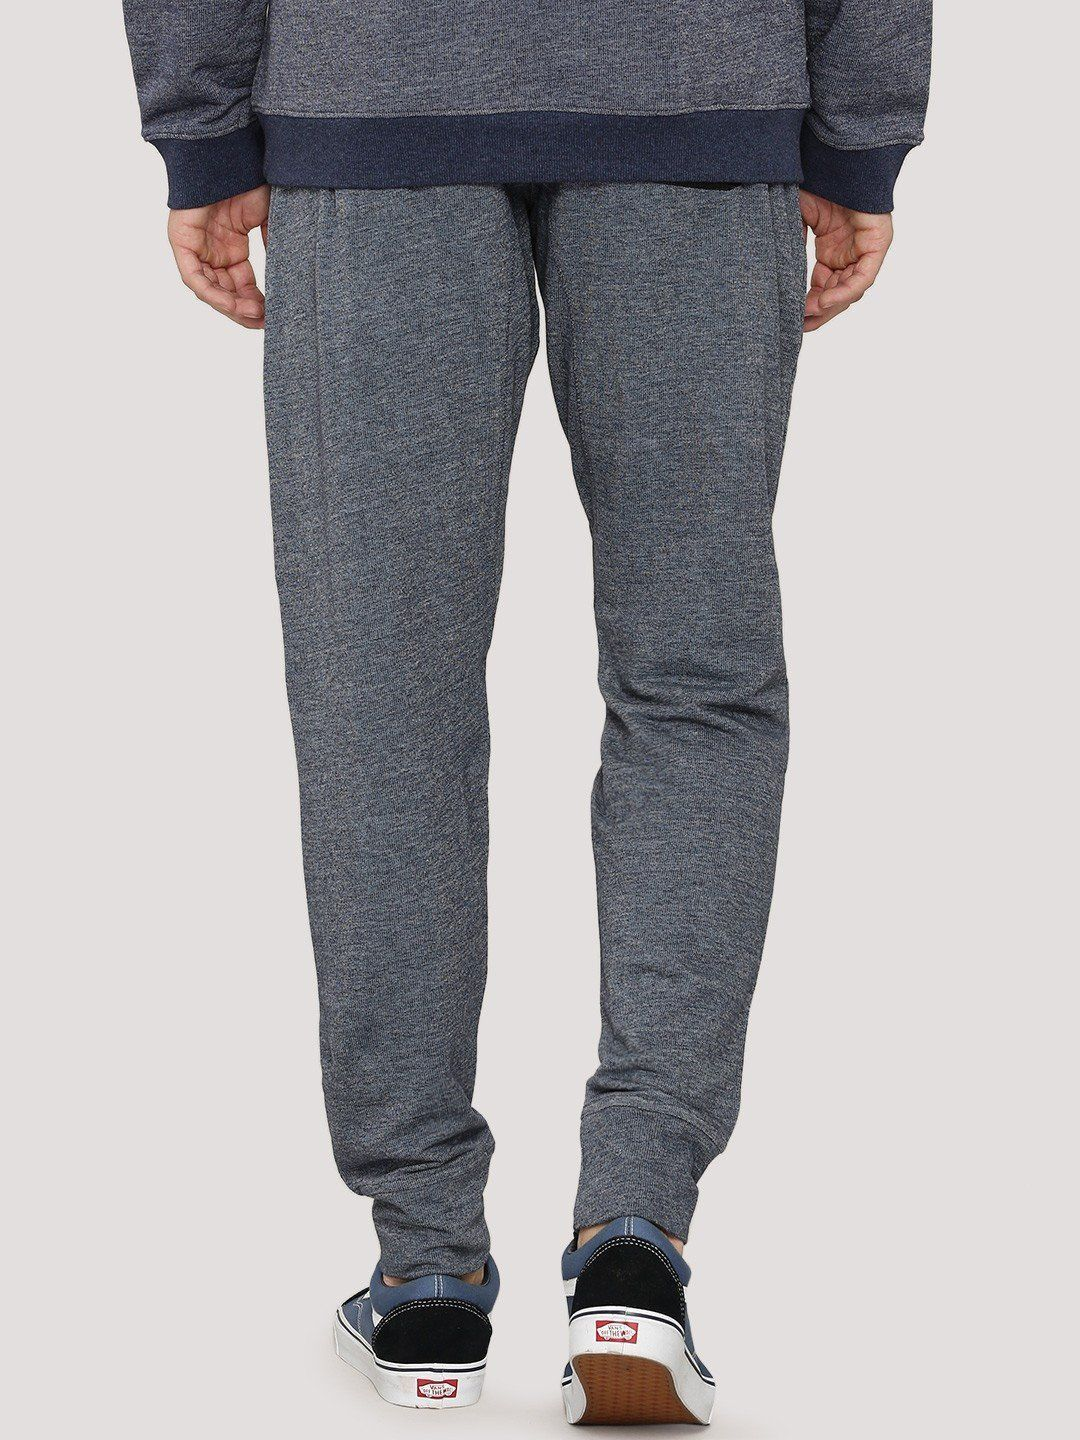 Fighting Fame Print Blue Melange Joggers - Fighting Fame  - 3